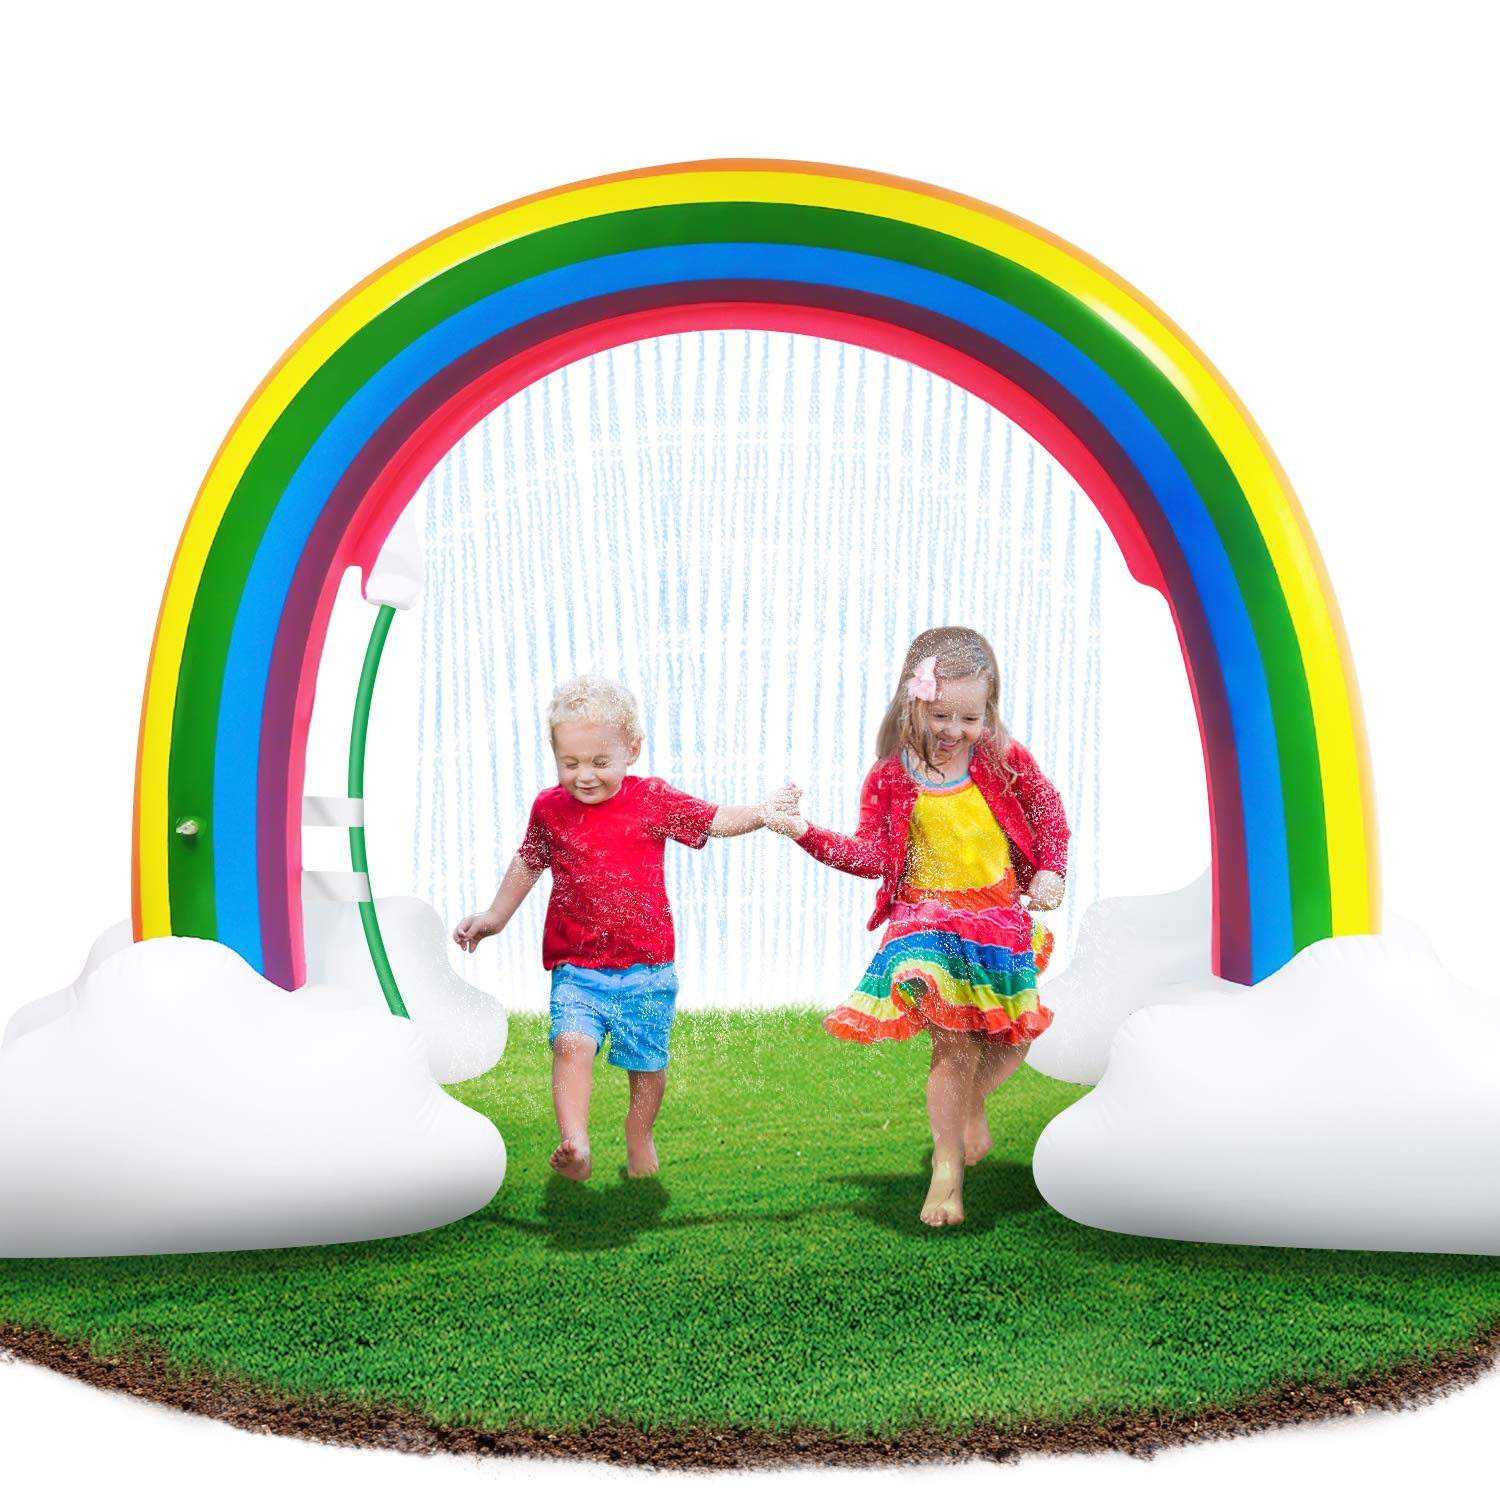 Neteast Inflatable Rainbow Arch Sprinkler Toys for Kids Outdoor, 96'' Outside Sprinkler Splash Water Toys for 1 2 3 4 5 6 7 8 Year Old Boys and Girls by Neteast